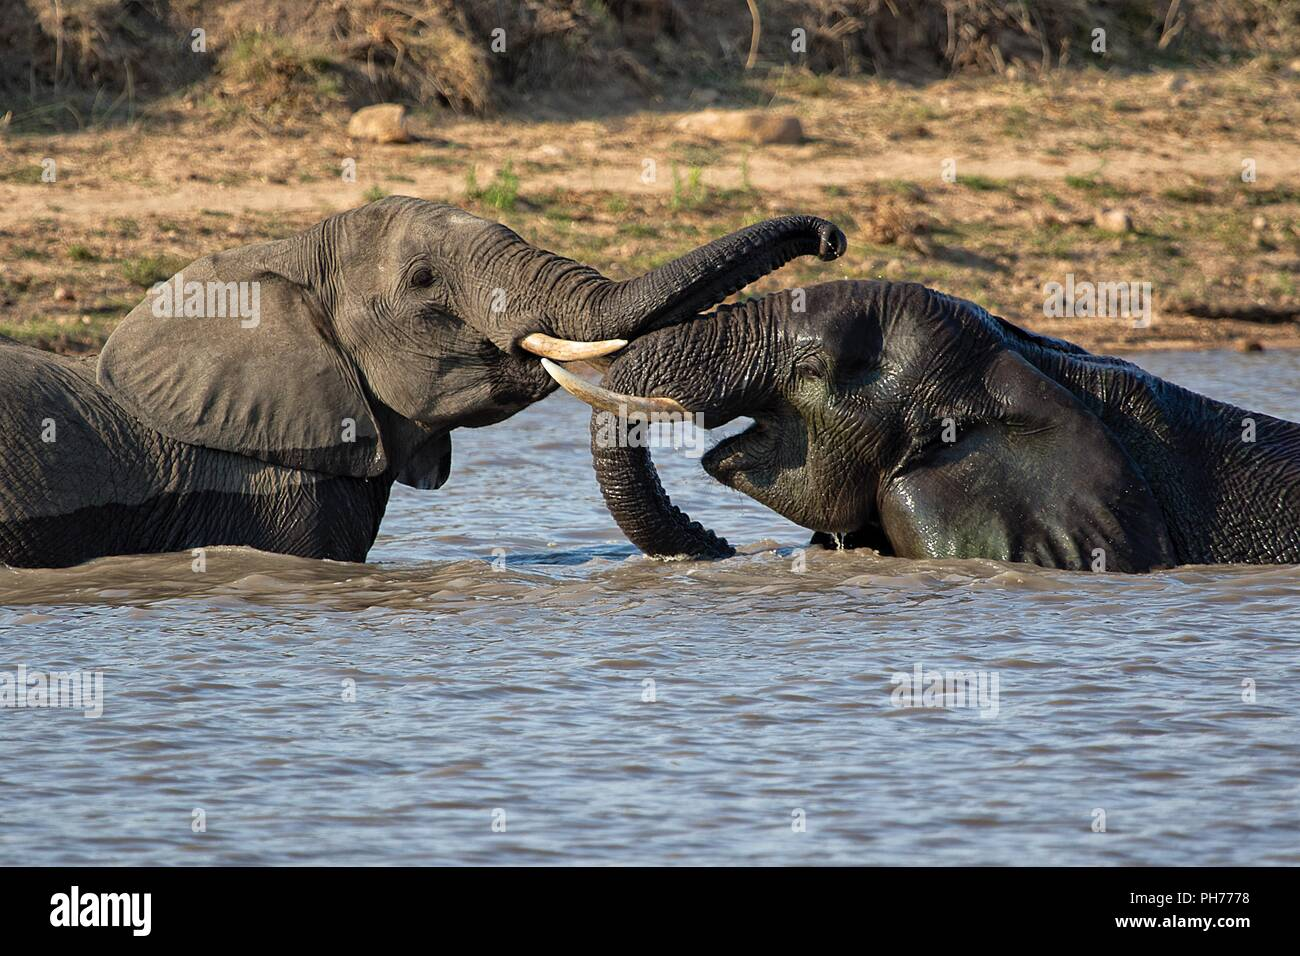 elephants playing in a lake at kruger national park - Stock Image